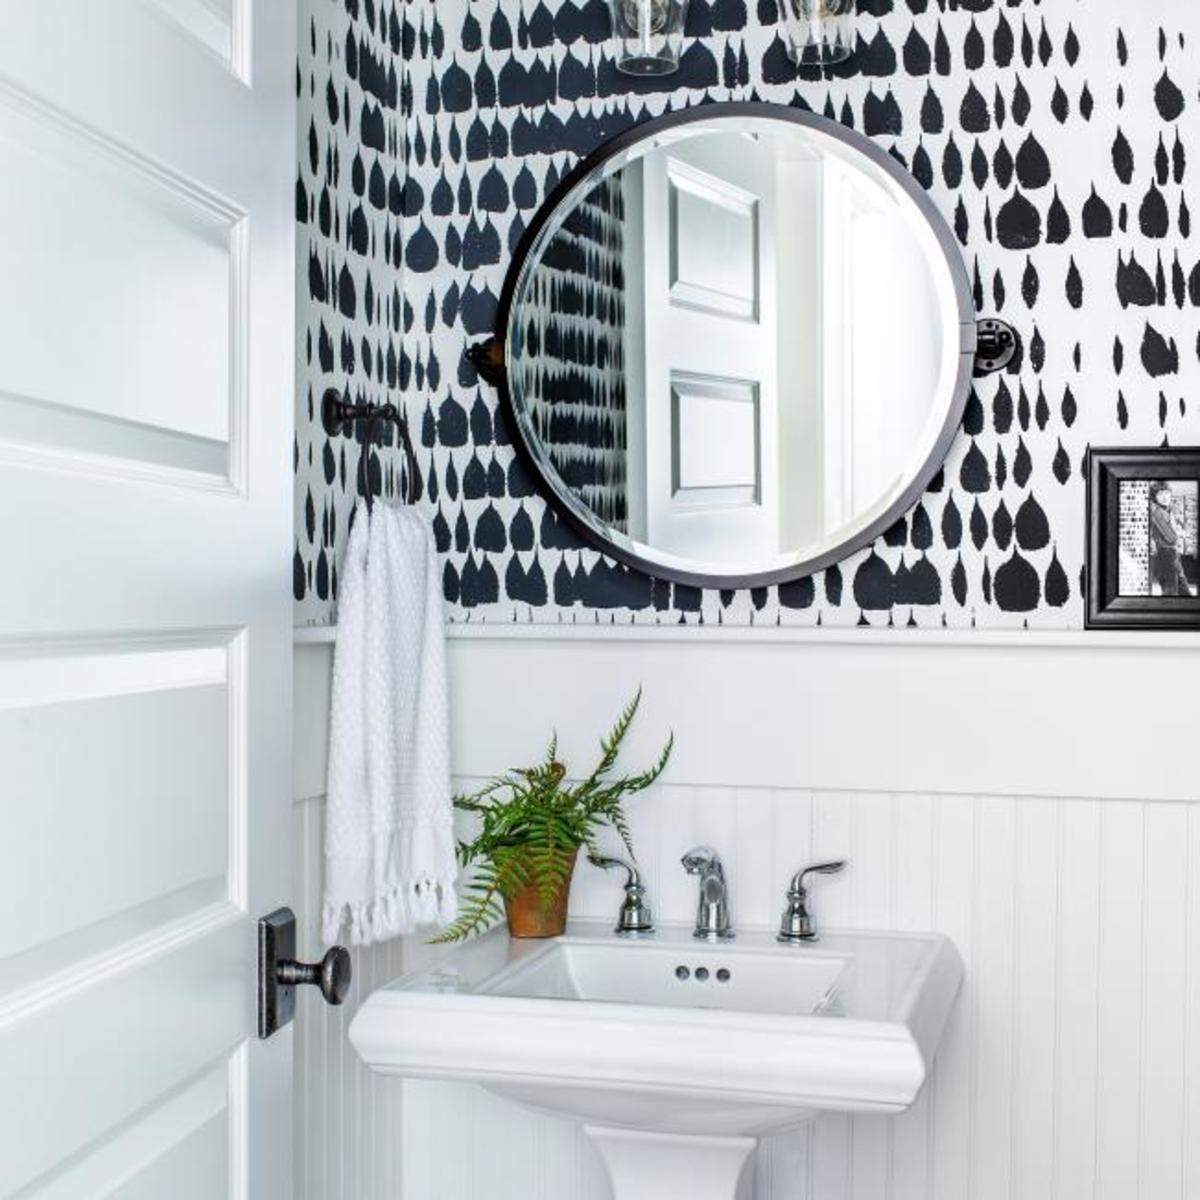 When you've completed all of the upgrades, you can begin planning the interior of your powder room. The black and white color scheme is timeless and works well in every print or pattern.